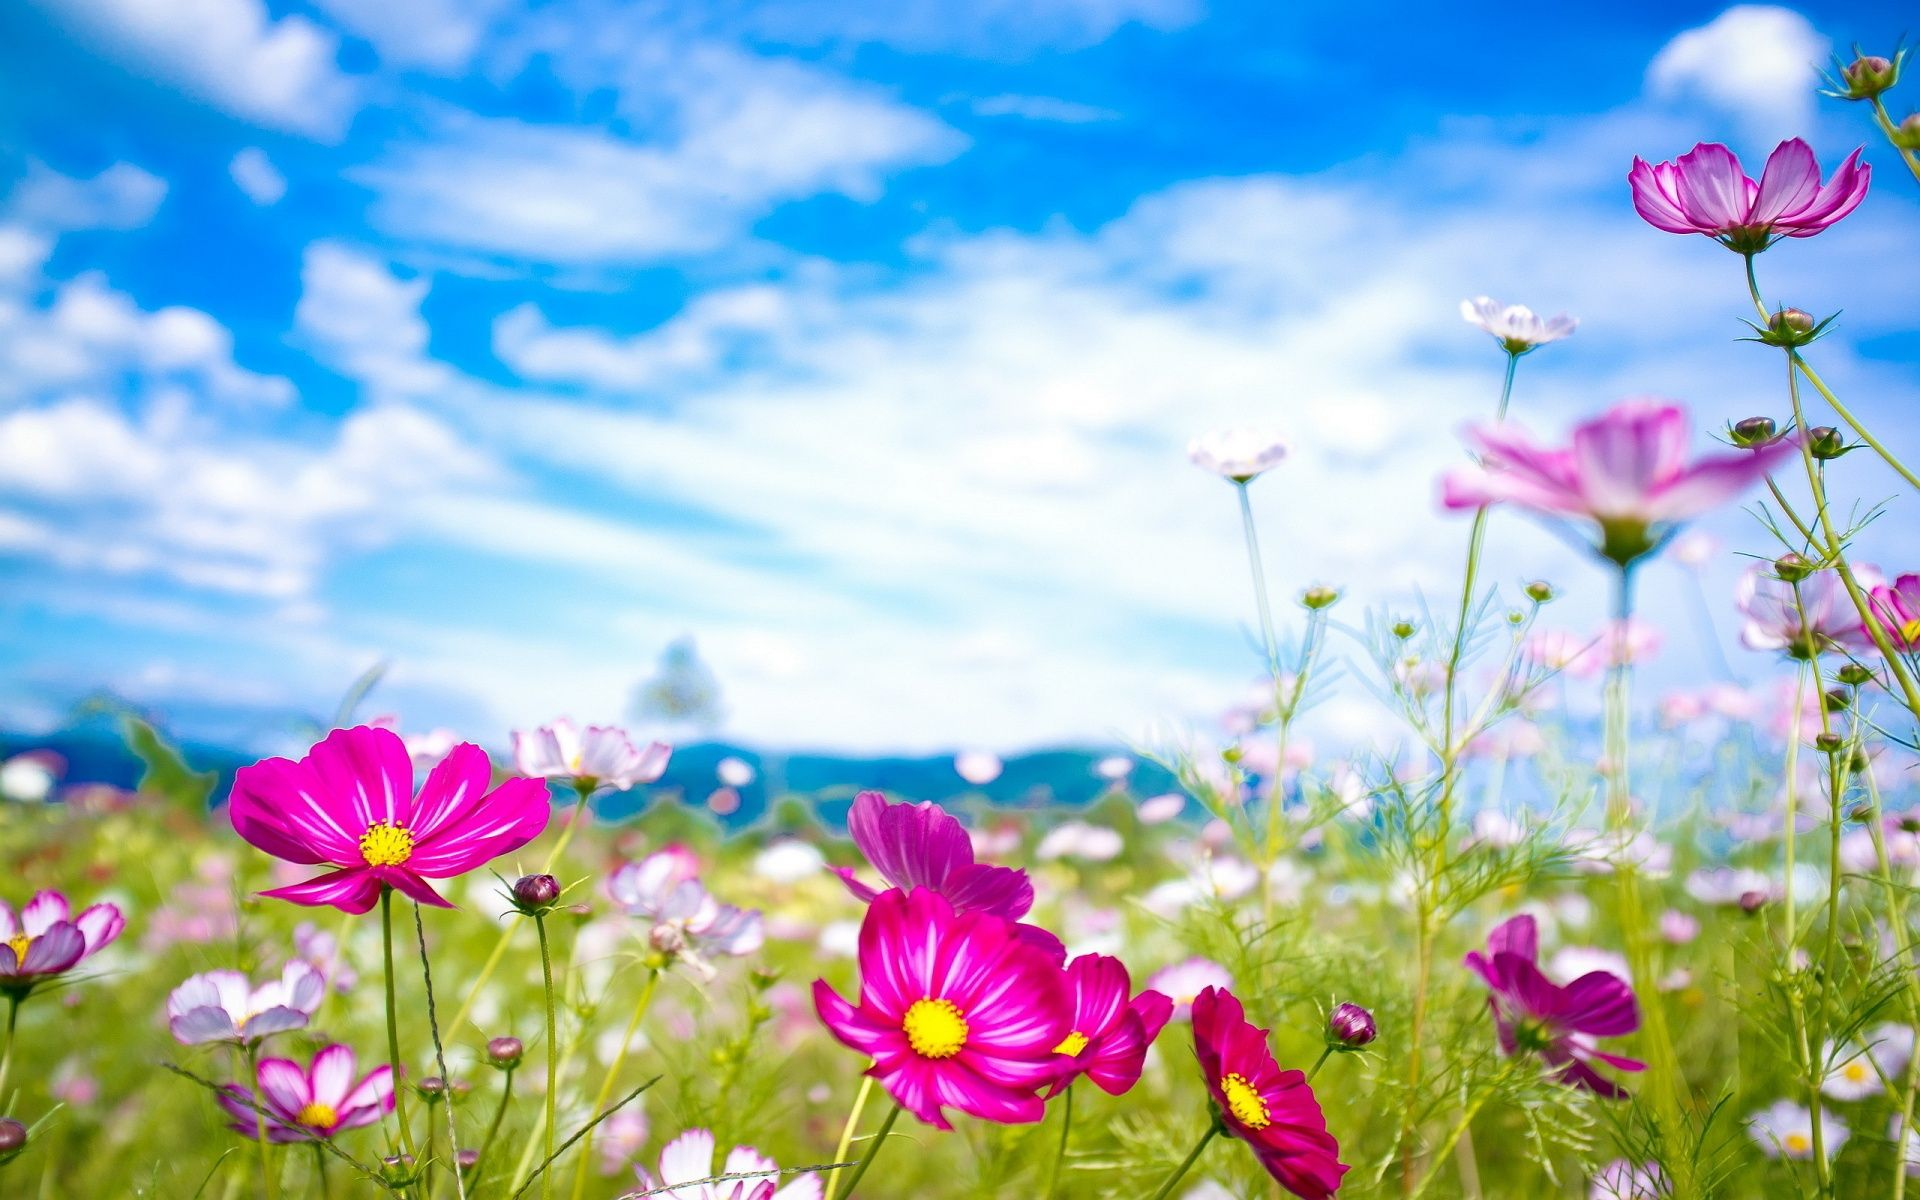 Flower Wallpapers Background Natures Wallpapers Flower Wallpaper